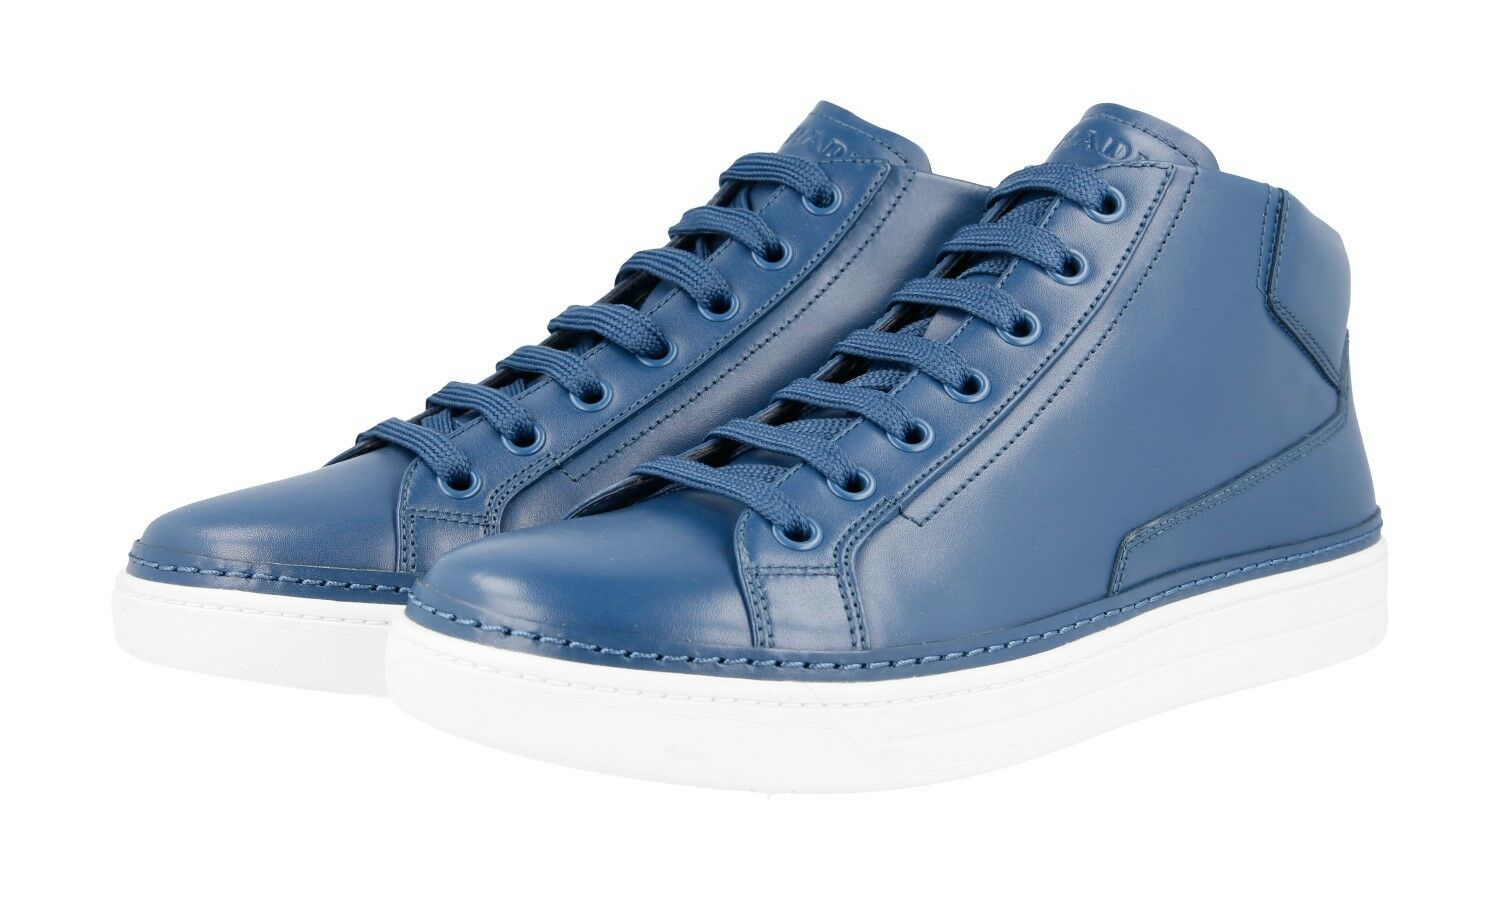 AUTH LUXURY PRADA HIGH TOP SNEAKERS SHOES 4T2863 BLUE NEW   9 EU 42 42,5